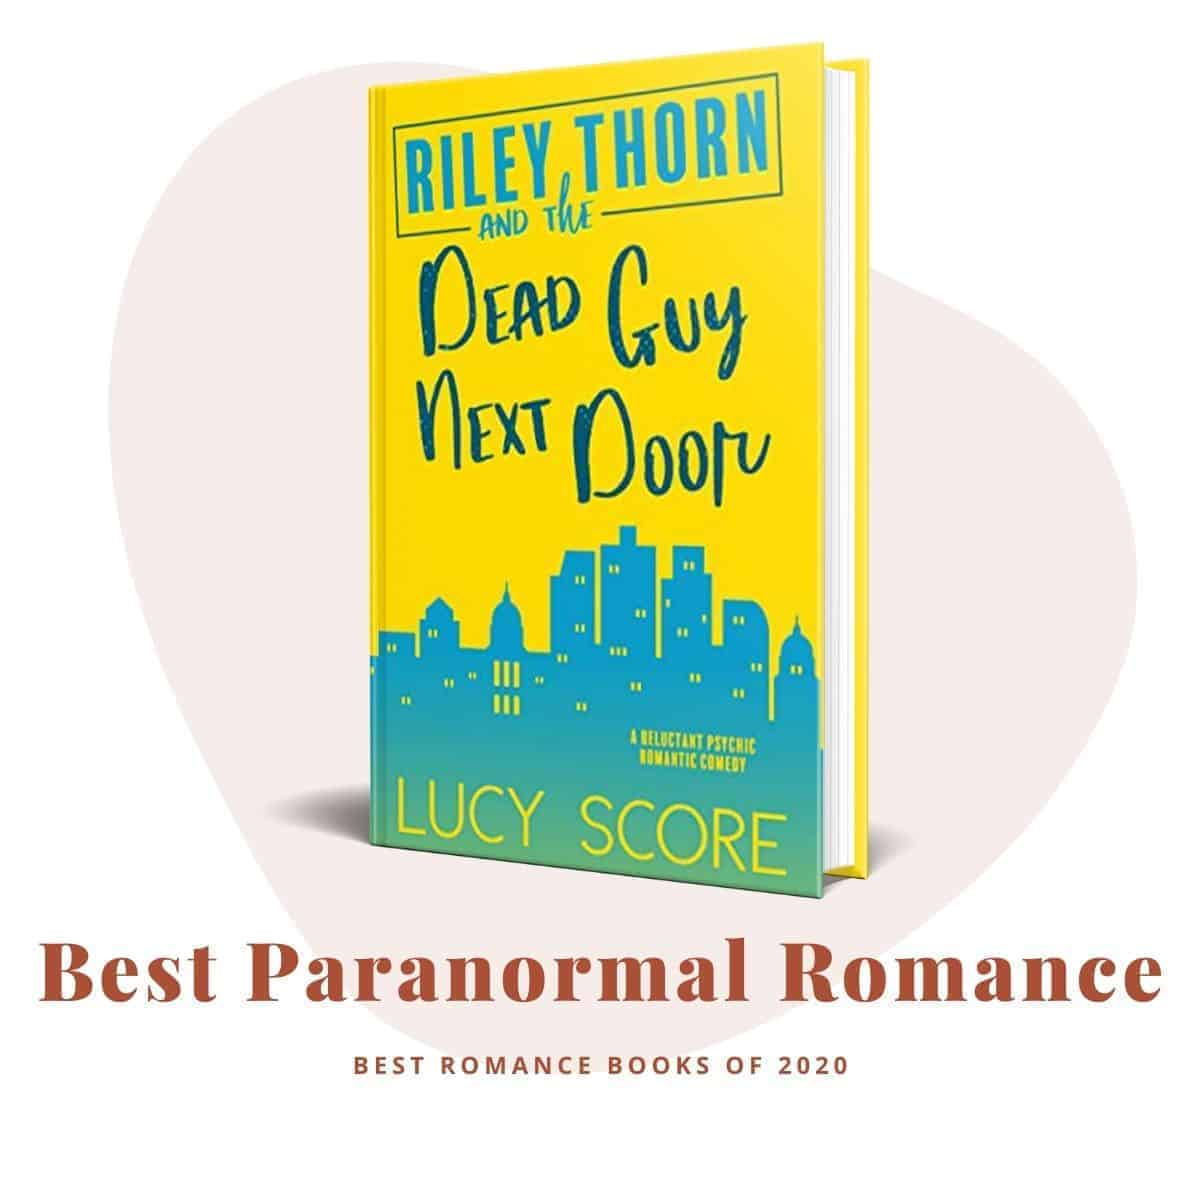 Best Romance Books 2020-Riley Thorn and the Dead Guy Next Door